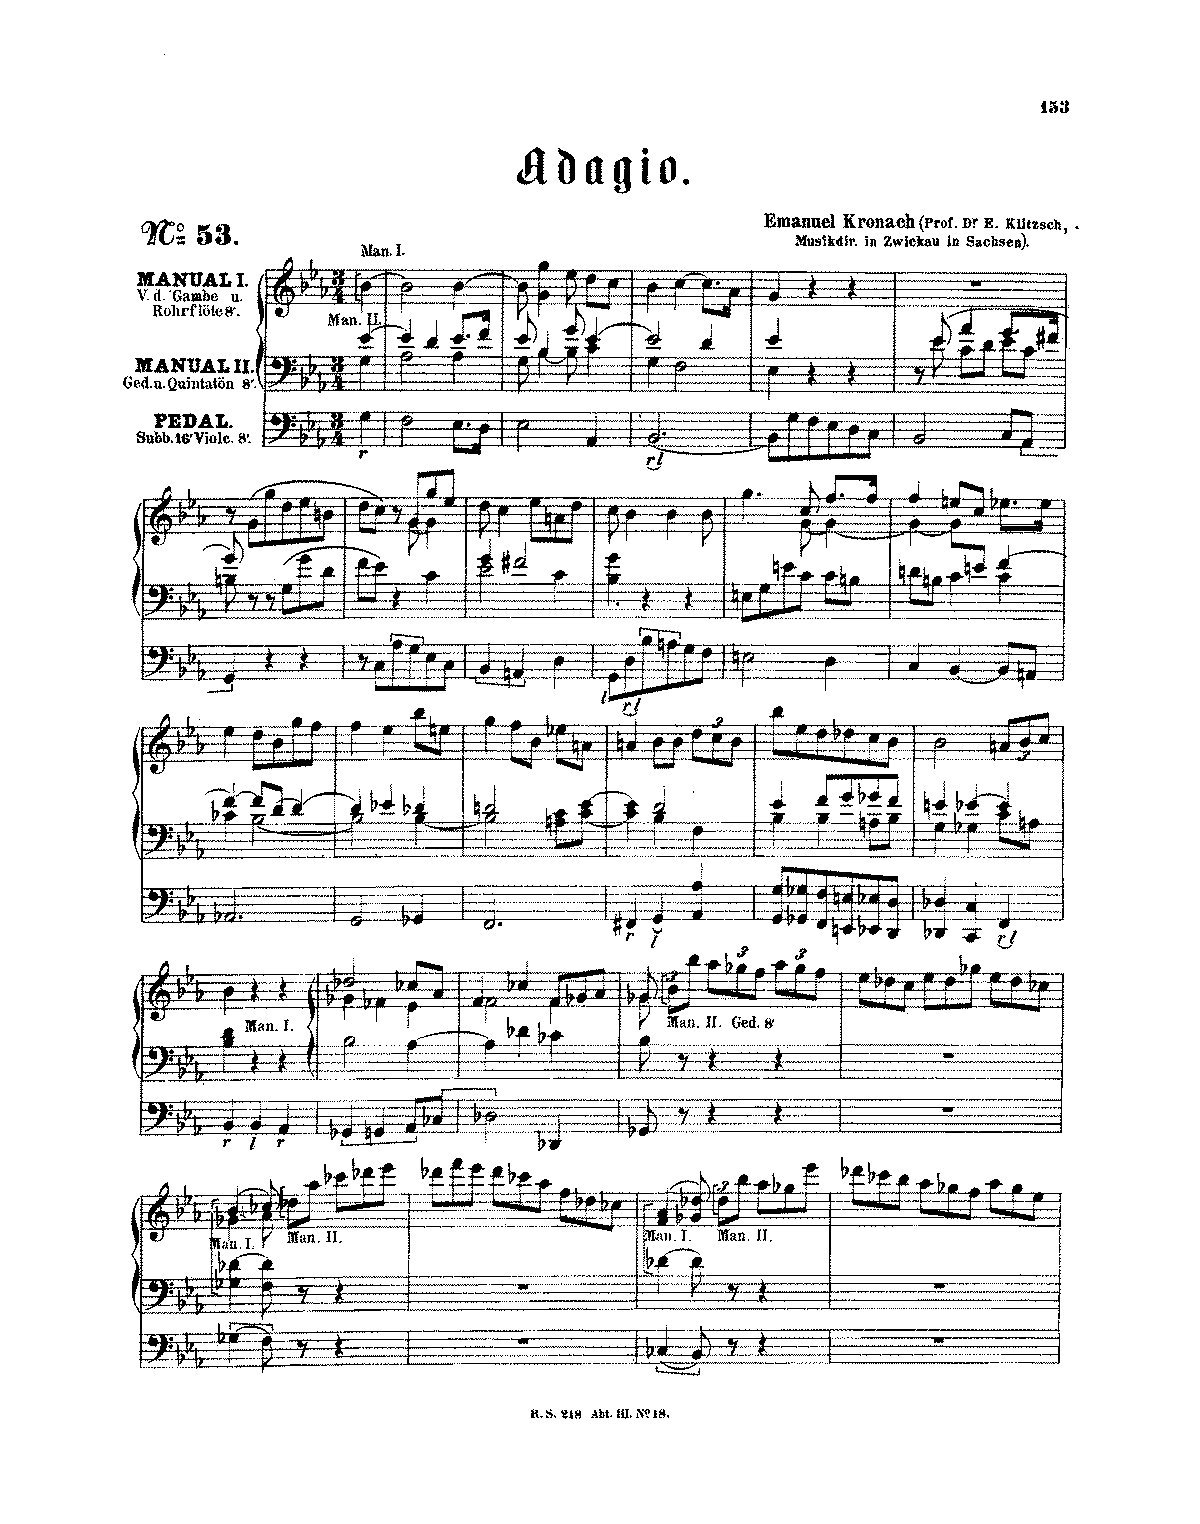 PMLP77163-Klitzsch - Adagio in E-flat major.pdf